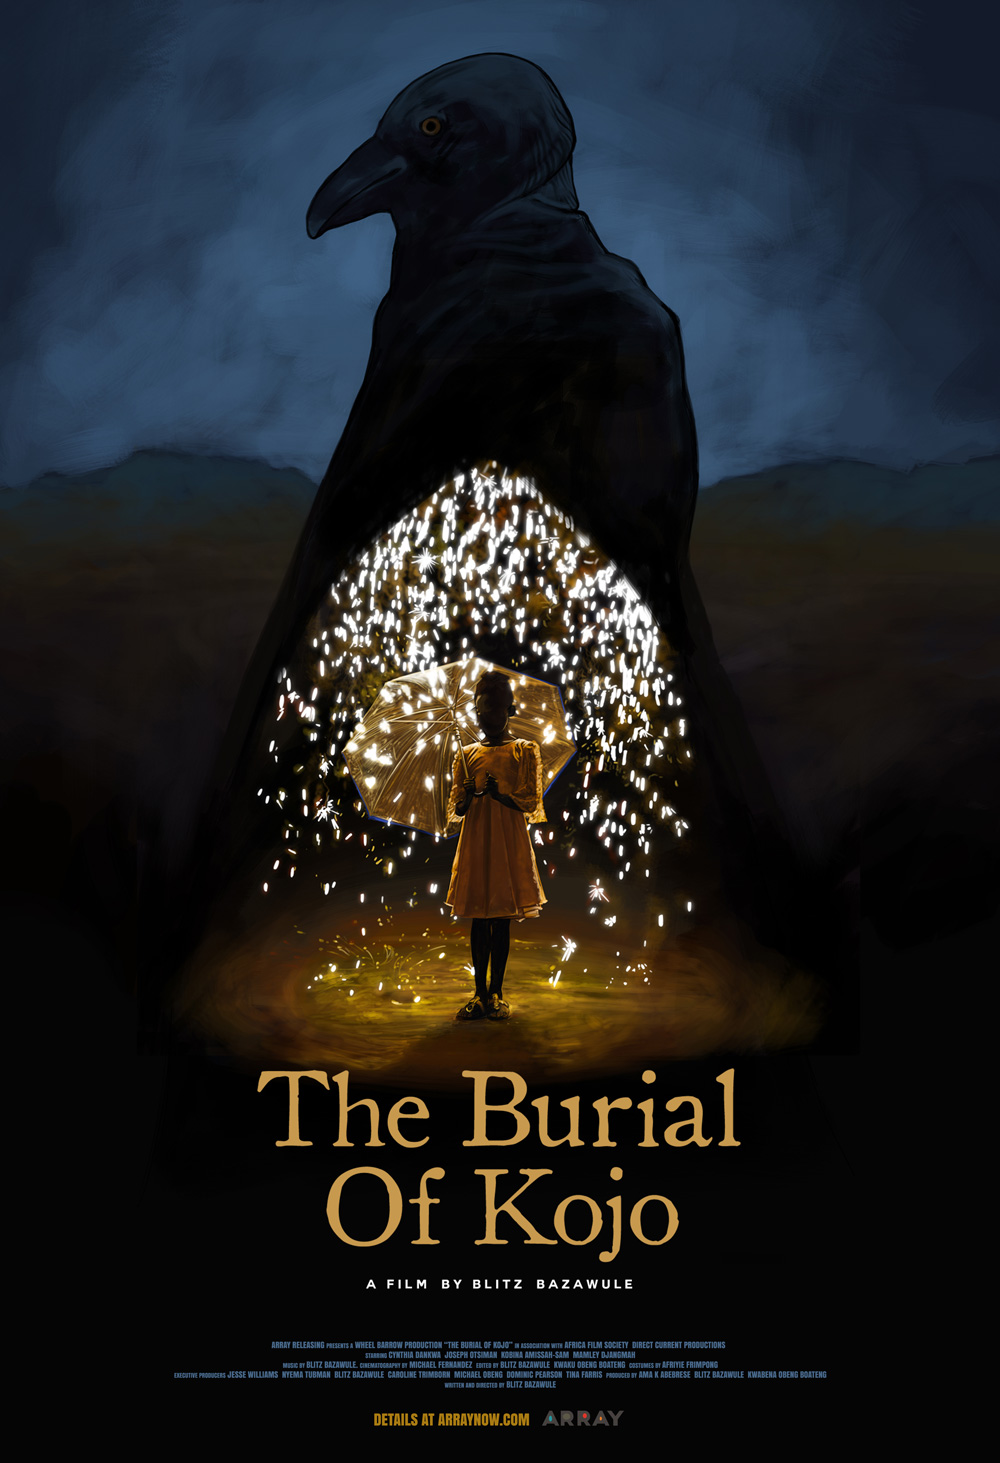 """THE BURIALOF KOJO - Written and directed by multi-disciplinary artist Samuel """"Blitz"""" Bazawule, THE BURIAL OF KOJO is an ambitious visual stunner set in Ghana. With the dynamic gaze of magical realism and Afrofuturism, Bazawule chronicles the tale of two brothers through a gifted girl who travels beautiful lands that exist between life and death. In making THE BURIAL OF KOJO, Bazawule focused on building an infrastructure for Ghanaian filmmakers, training local artisans, and creating a self-sustaining environment for cinema in Ghana that will lead to what he calls a rebirth of a long-dormant film culture in the country. Bazawule raised the budget for the movie on his own, primarily financed by Ghanaians and other people of African descent. This marks the rare occasion in which an African film of this scale has been made without outside funding to international acclaim."""